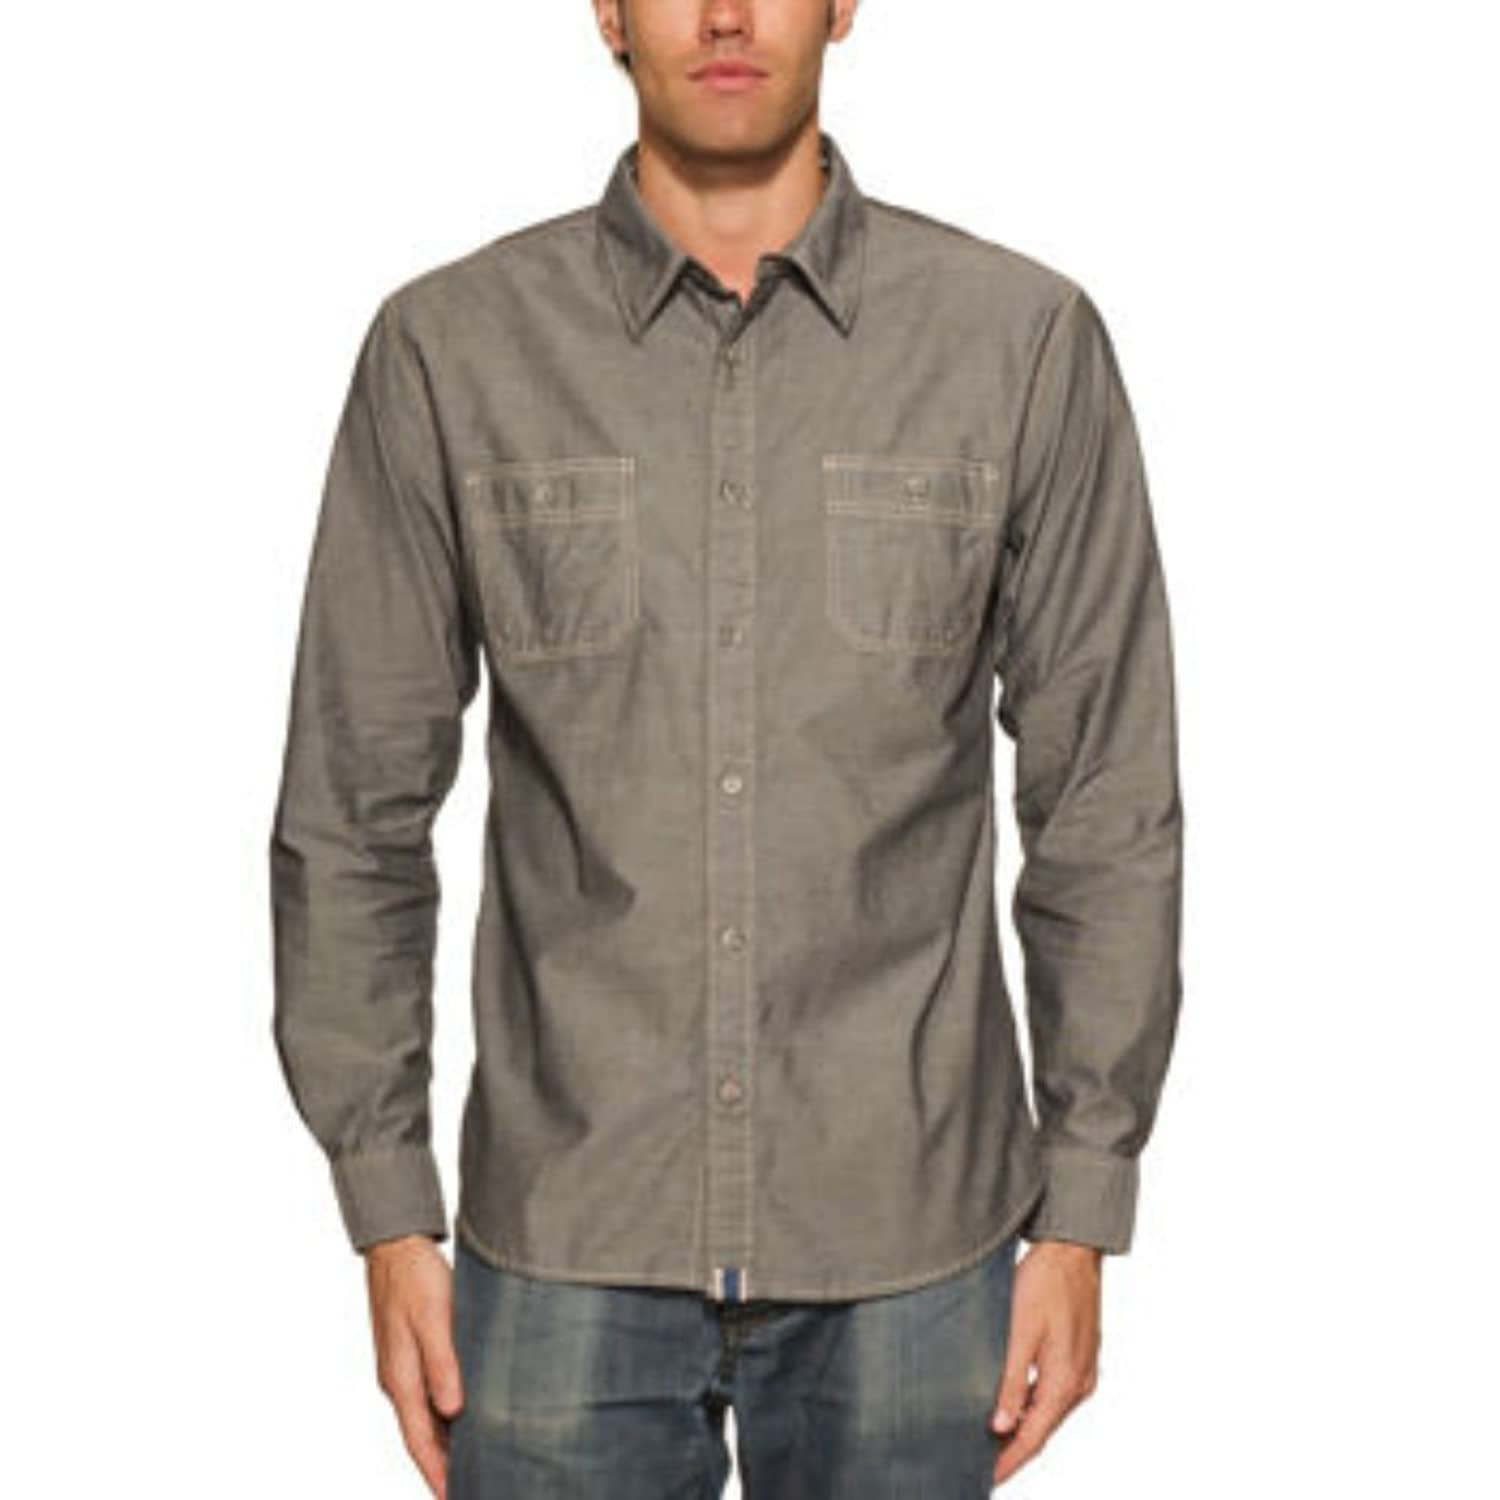 1930s Style Mens Shirts Weatherproof Vintage Yarn Dyed Mens Long Sleeve Woven Shirt $29.99 AT vintagedancer.com